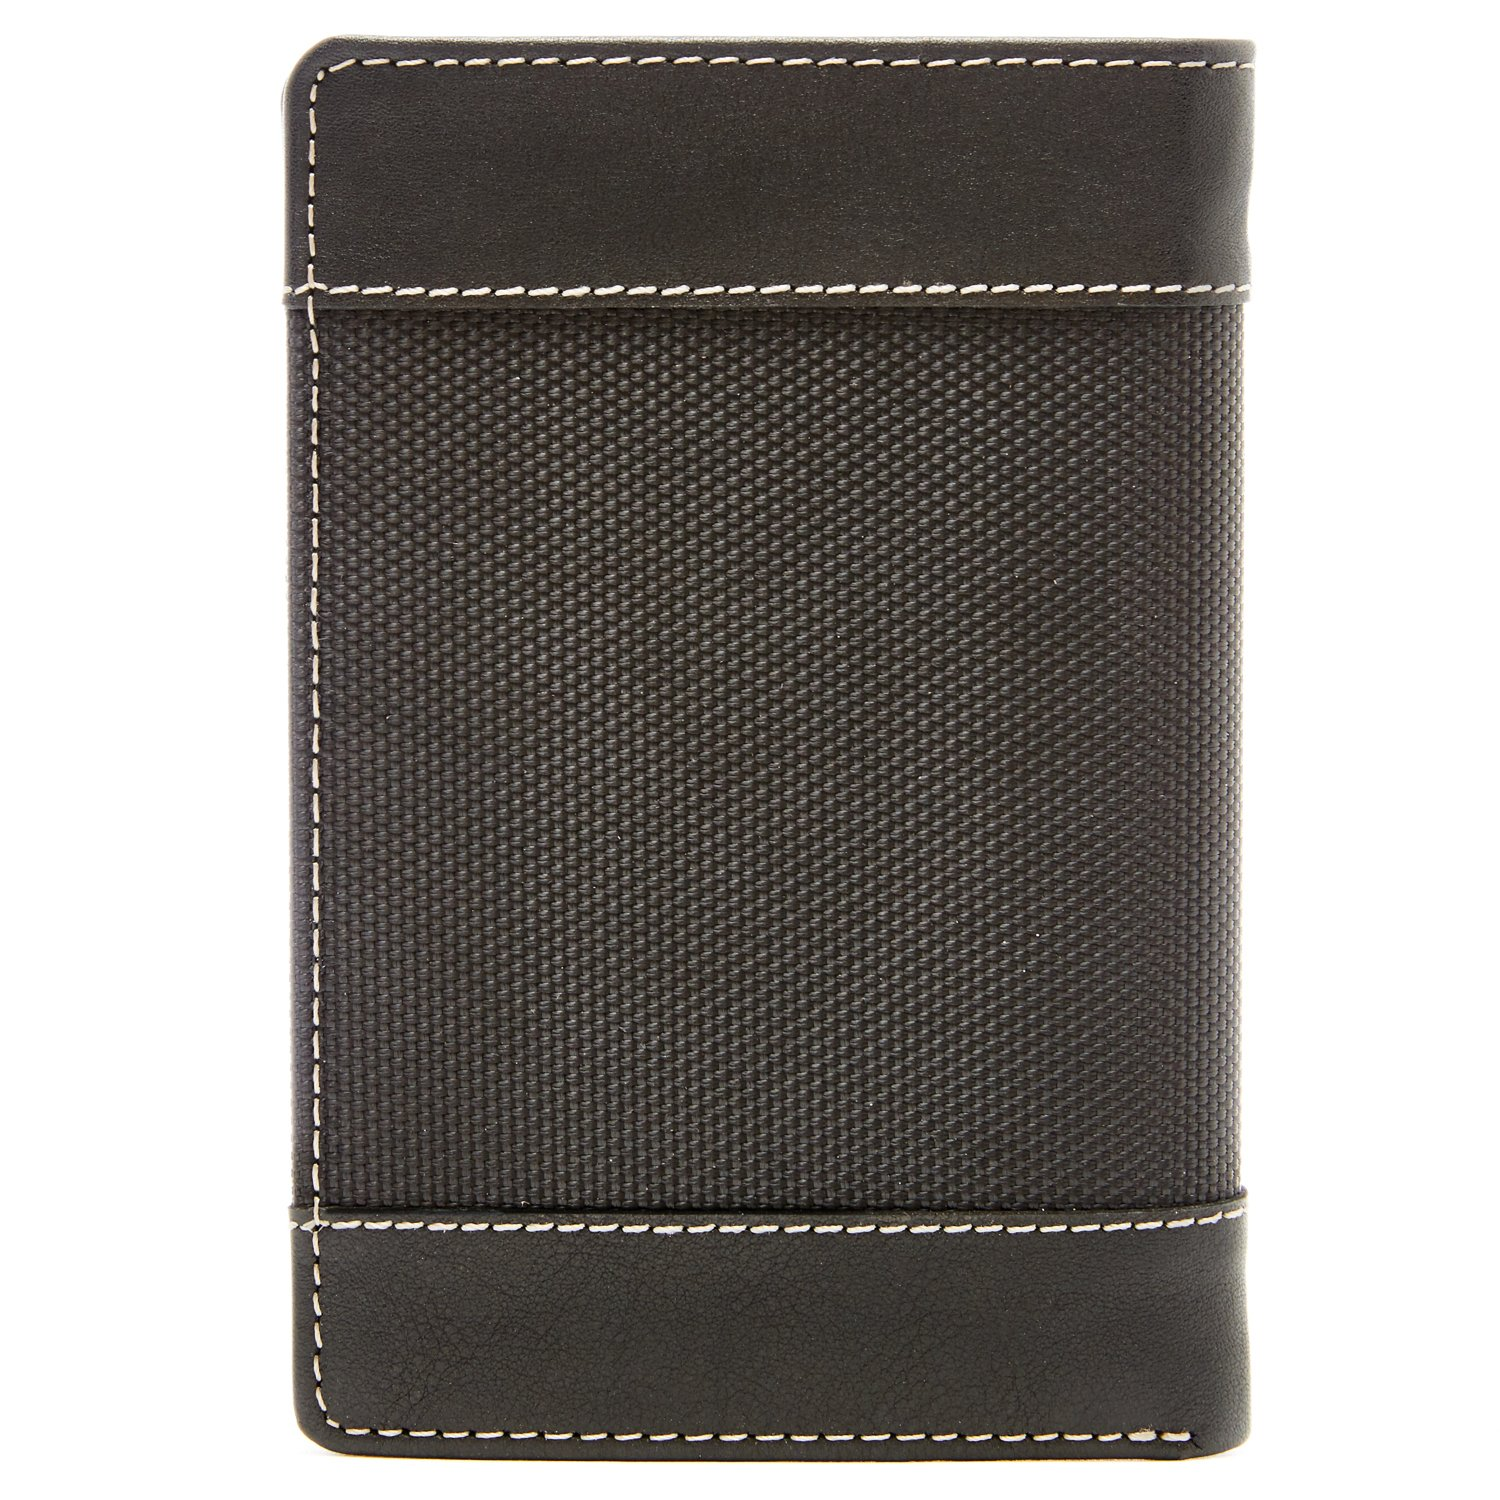 Passport Holder Cover RFID Blocking - Leather Travel Wallet Credit Card Organizer by Access Denied (Image #5)